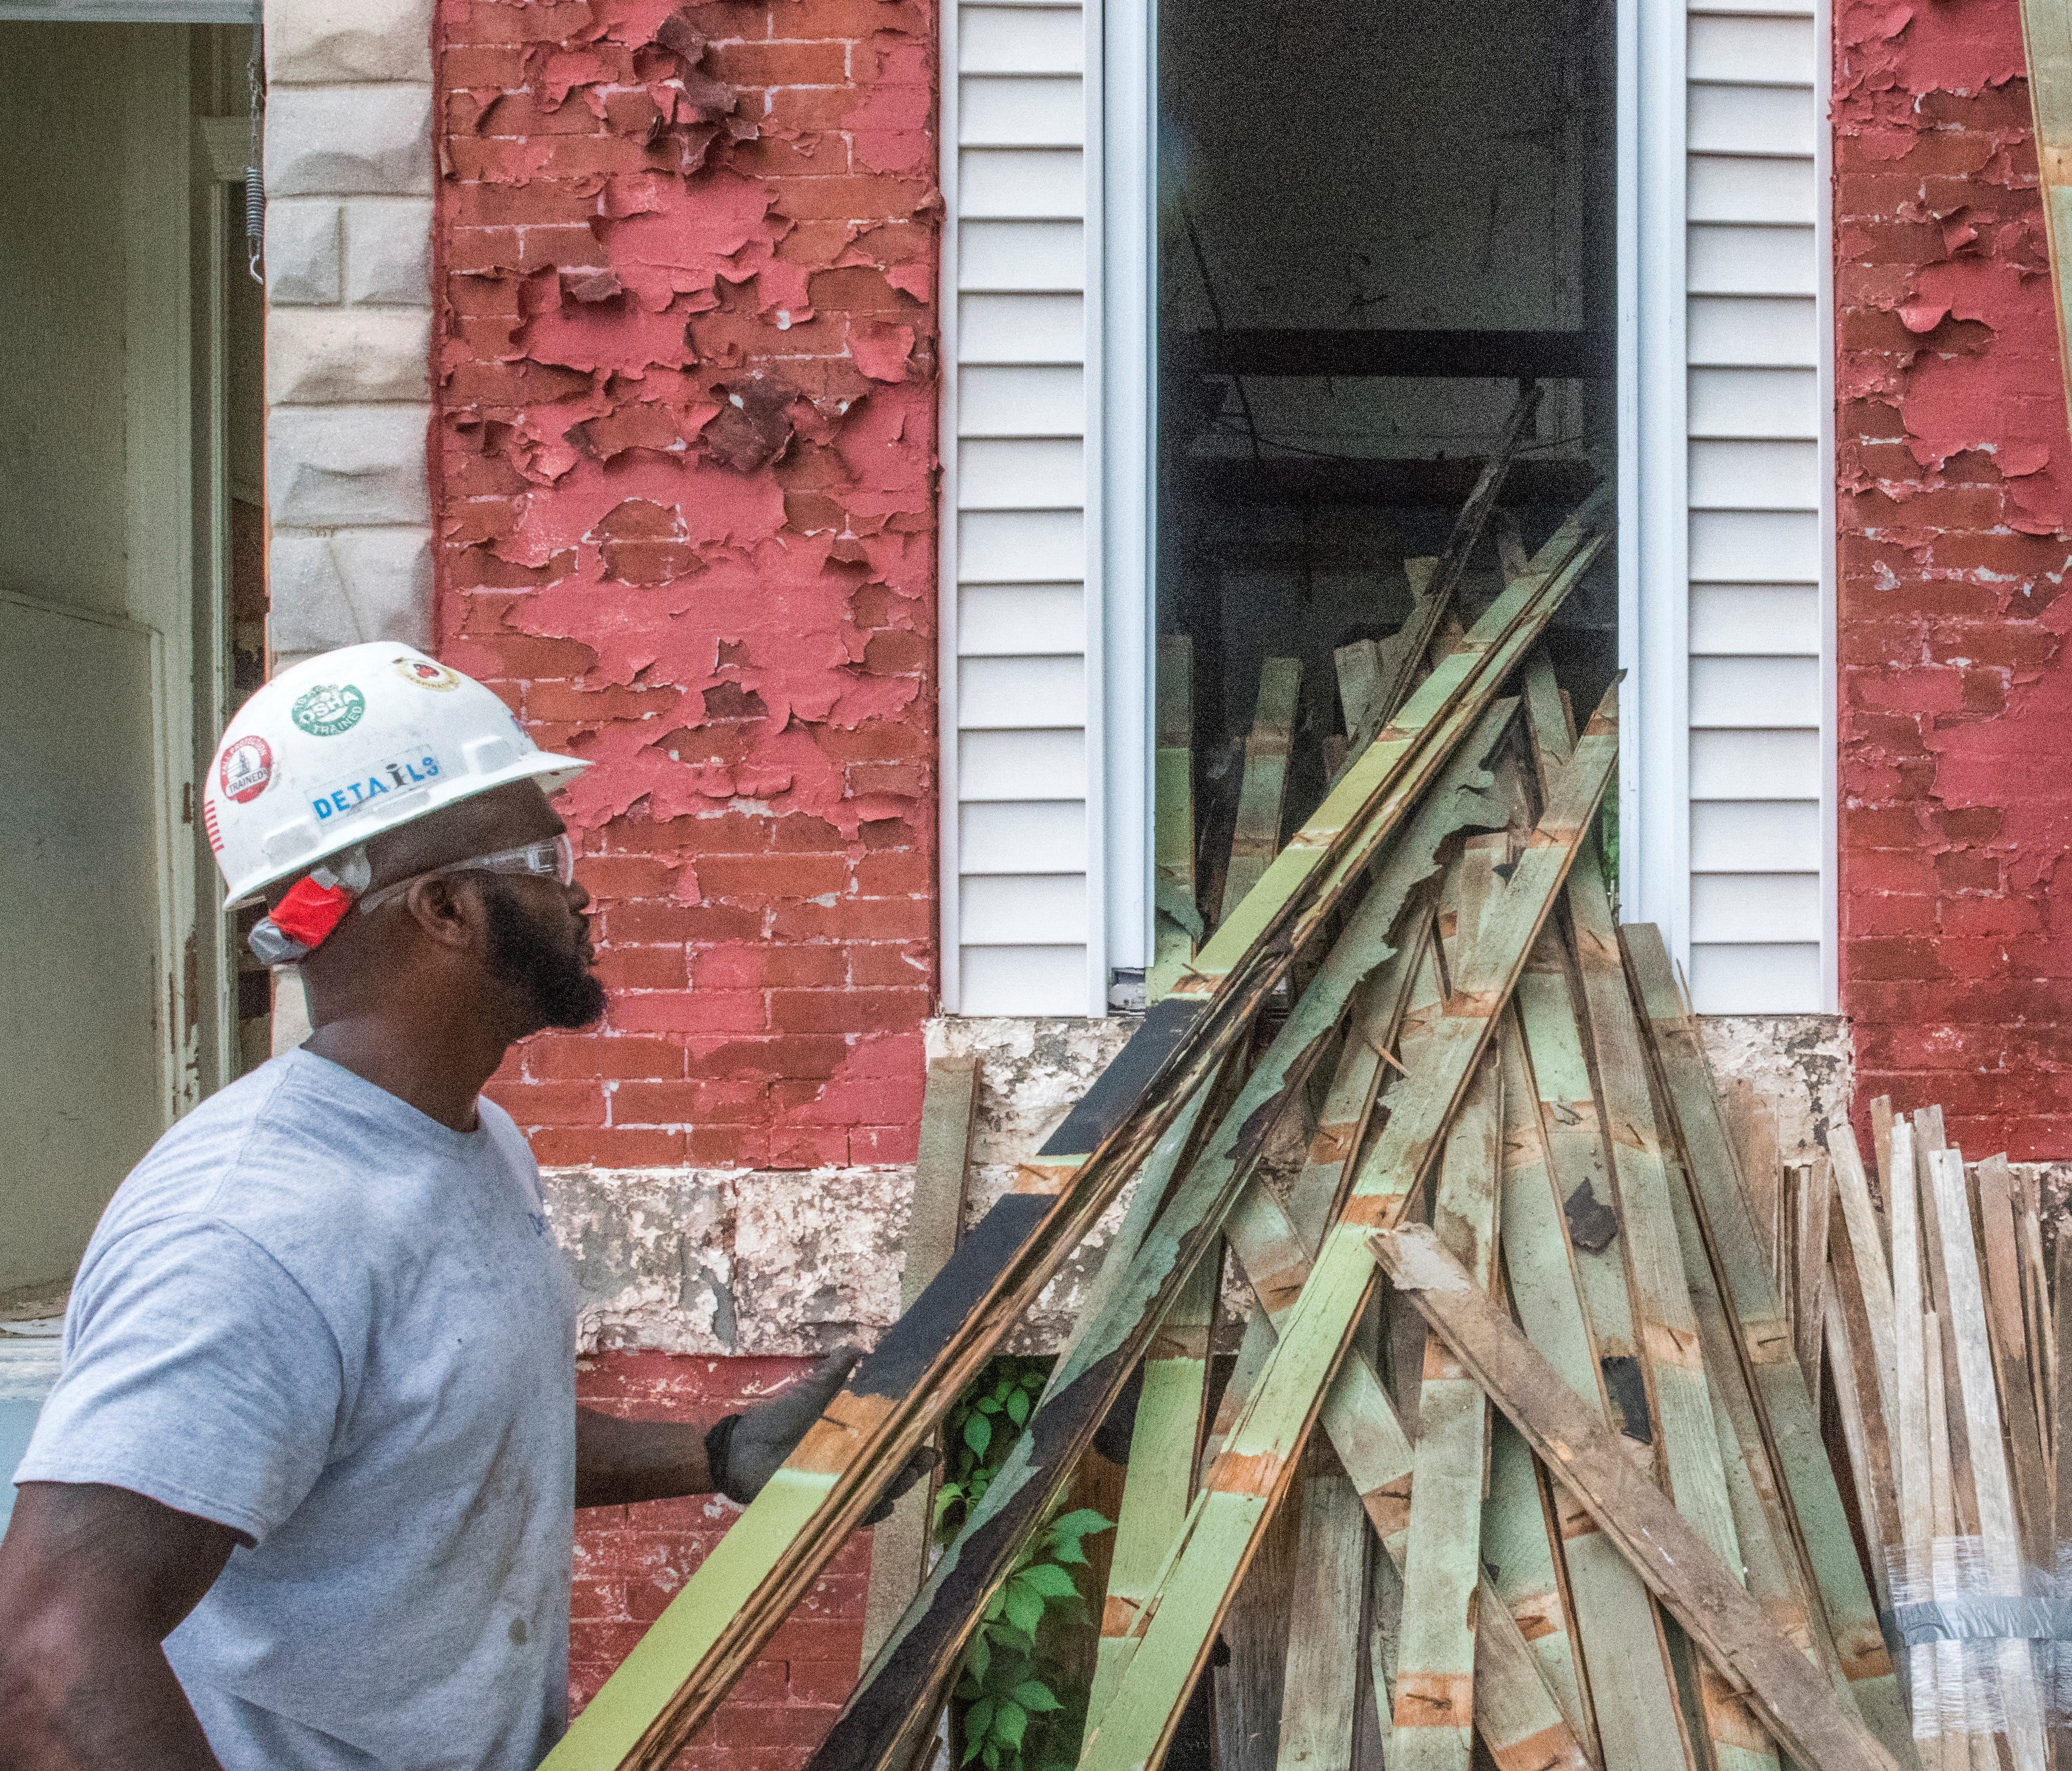 Working for the Humanim company, Details, Damon Toogood stacks planks of flooring outside of an abandoned East Baltimore row home.  The U.S. Forest Service and the non-profits have teamed up with the upscale furniture retailer Room & Board to put ex-